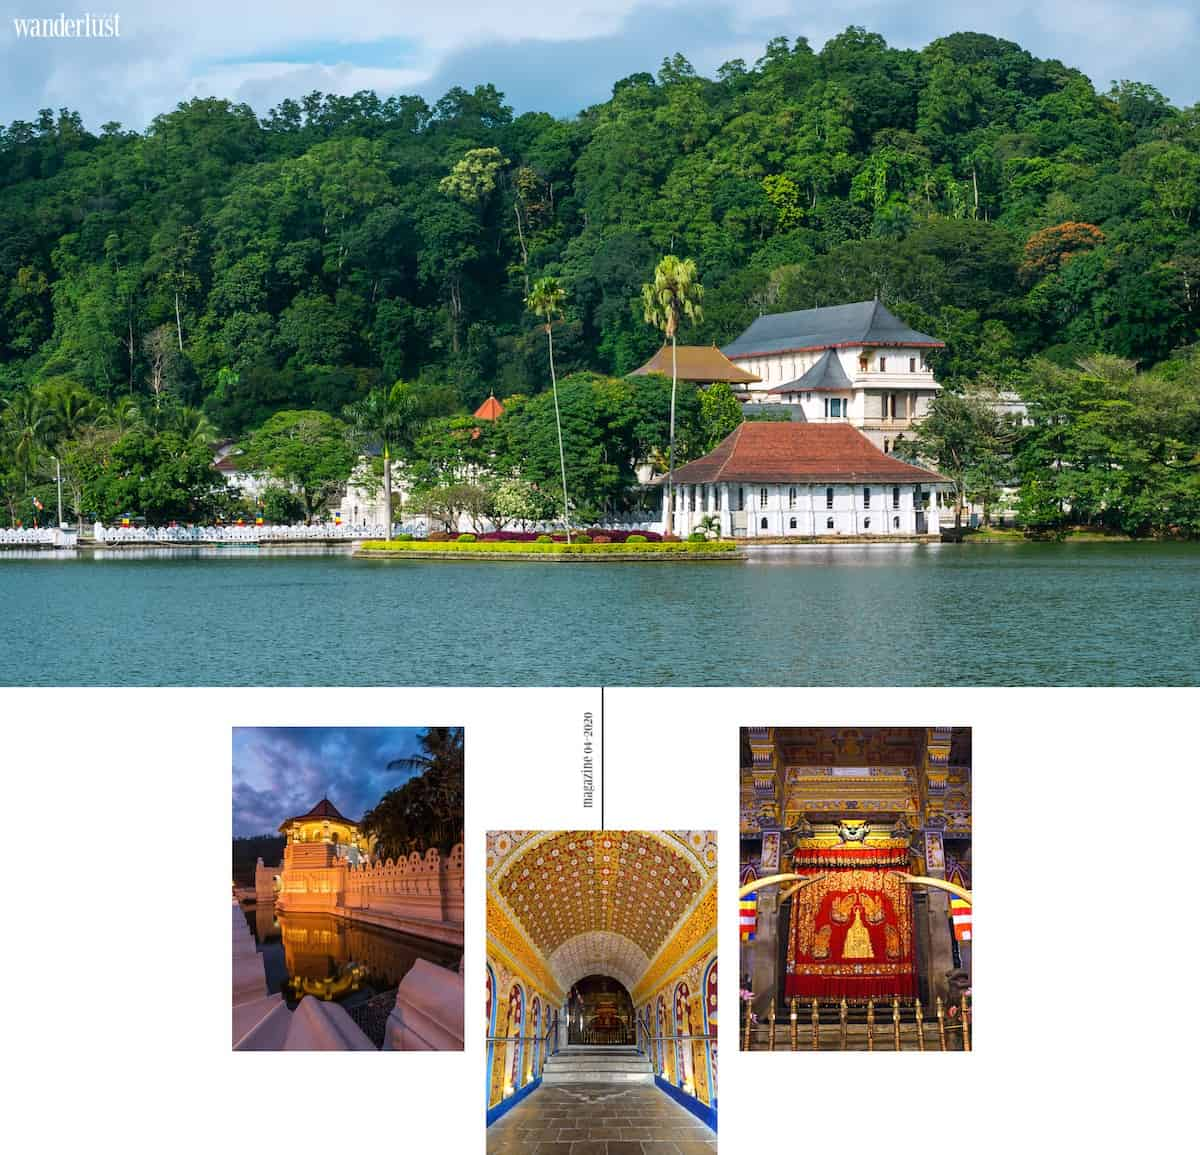 Wanderlust Tips magazine | Get lost in Kandy: The peaceful and scenic city of Sri Lanka